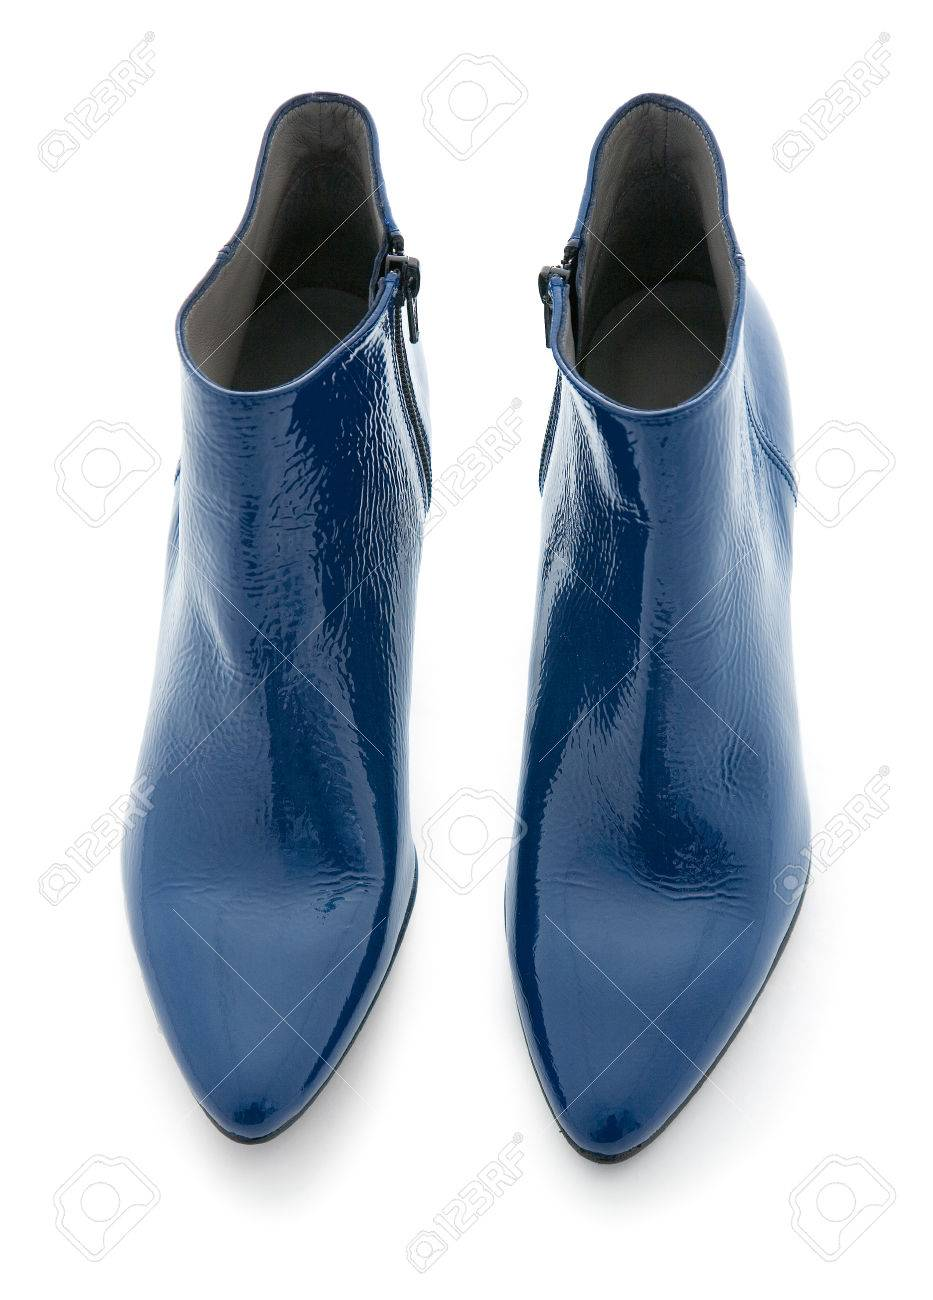 Blue Shiny Patent Leather Zipped Ankle